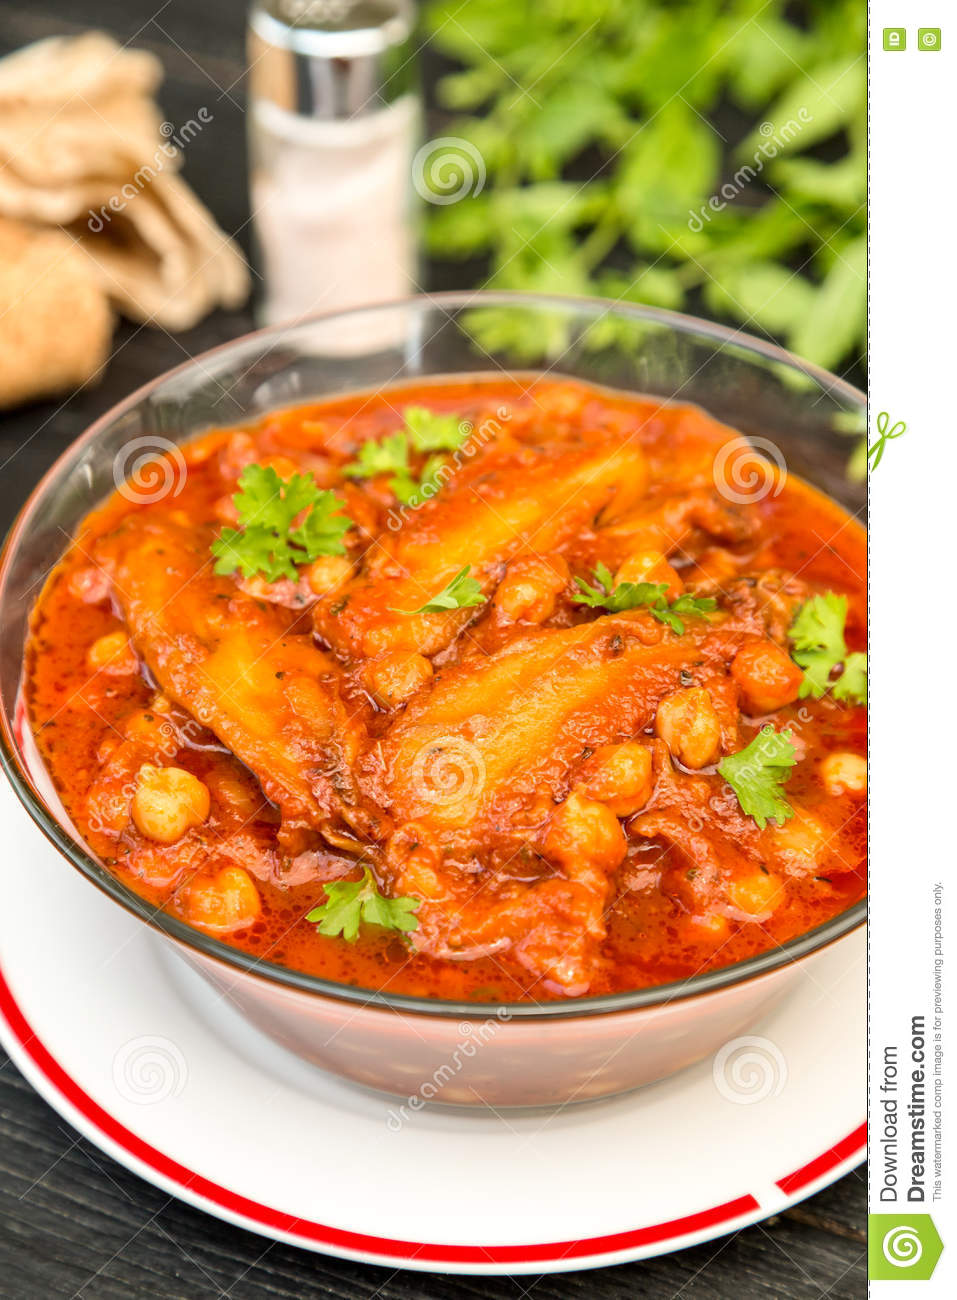 421 Vegetarian Moussaka Photos Free Royalty Free Stock Photos From Dreamstime